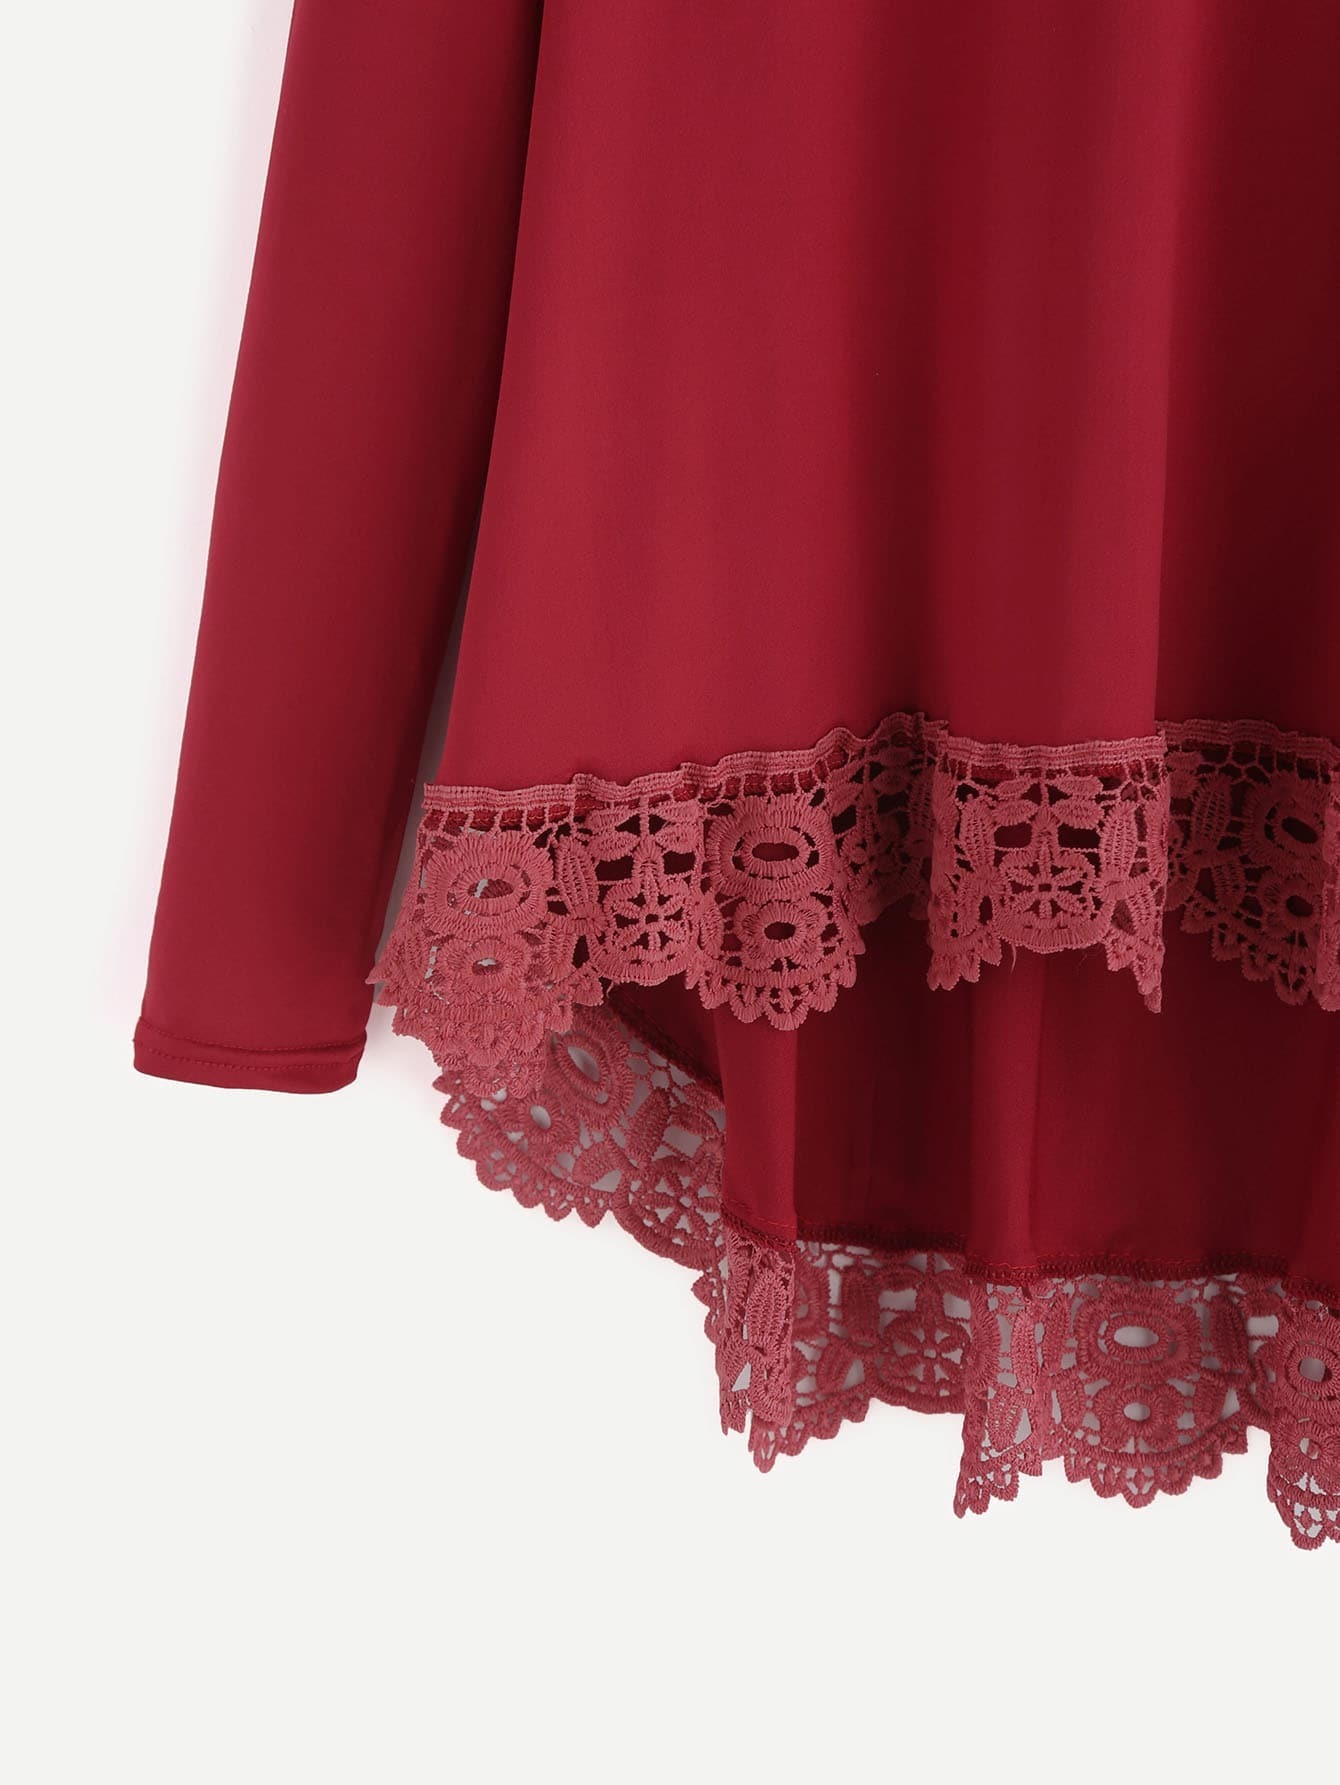 T shirt tricot contrast avec pan pliss bordeaux rouge for Interieur paupiere inferieure rouge